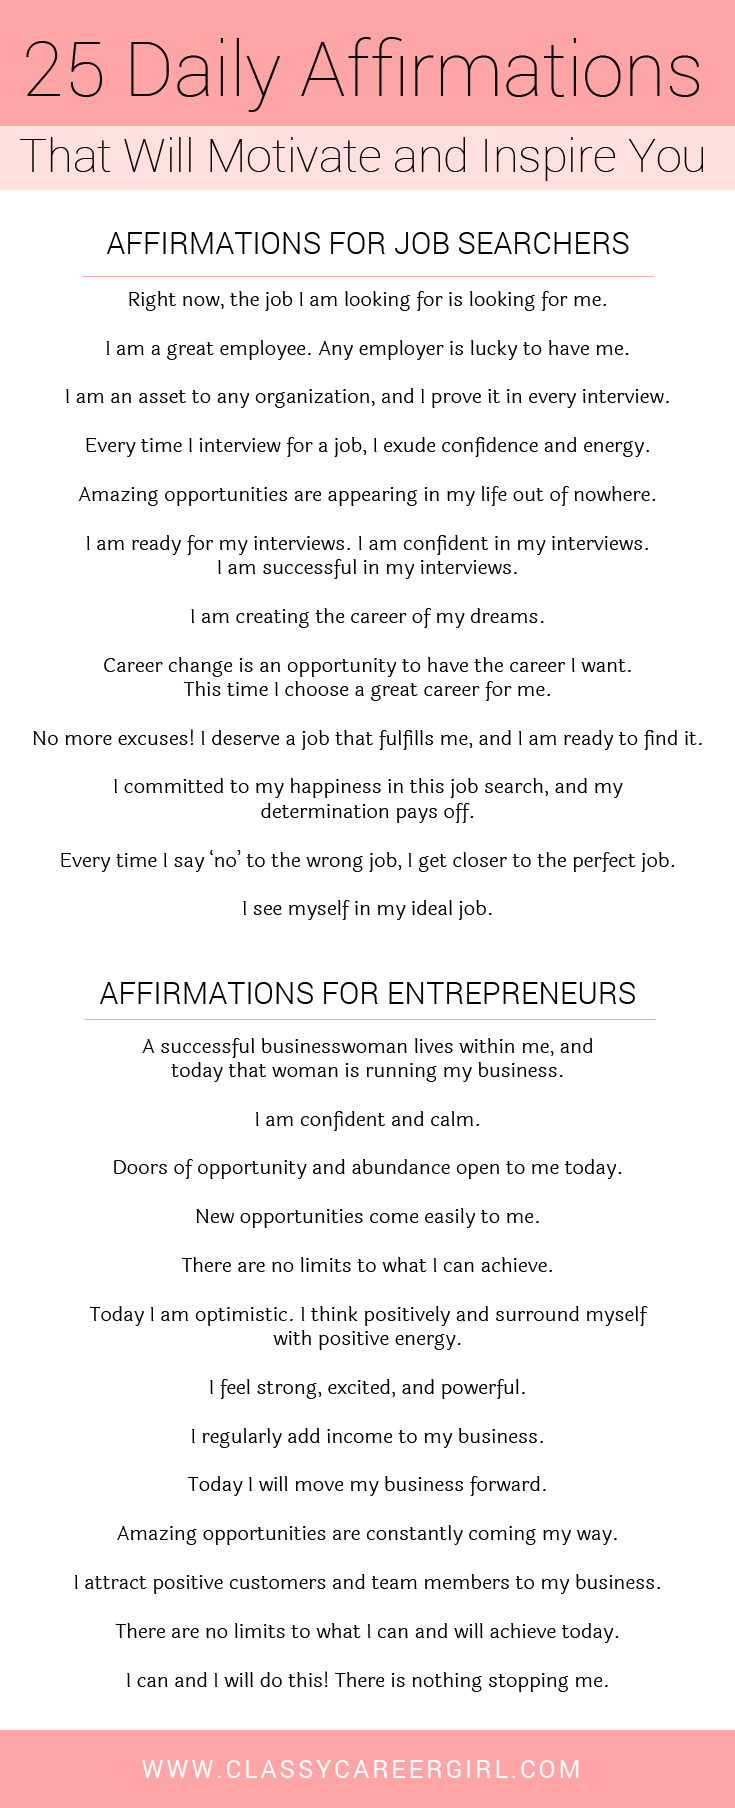 Read this collection of positive affirmations for workplace. #affirmation #business #career #productivity #money #cashflow #entrepreneurs #purpose #positivethinking